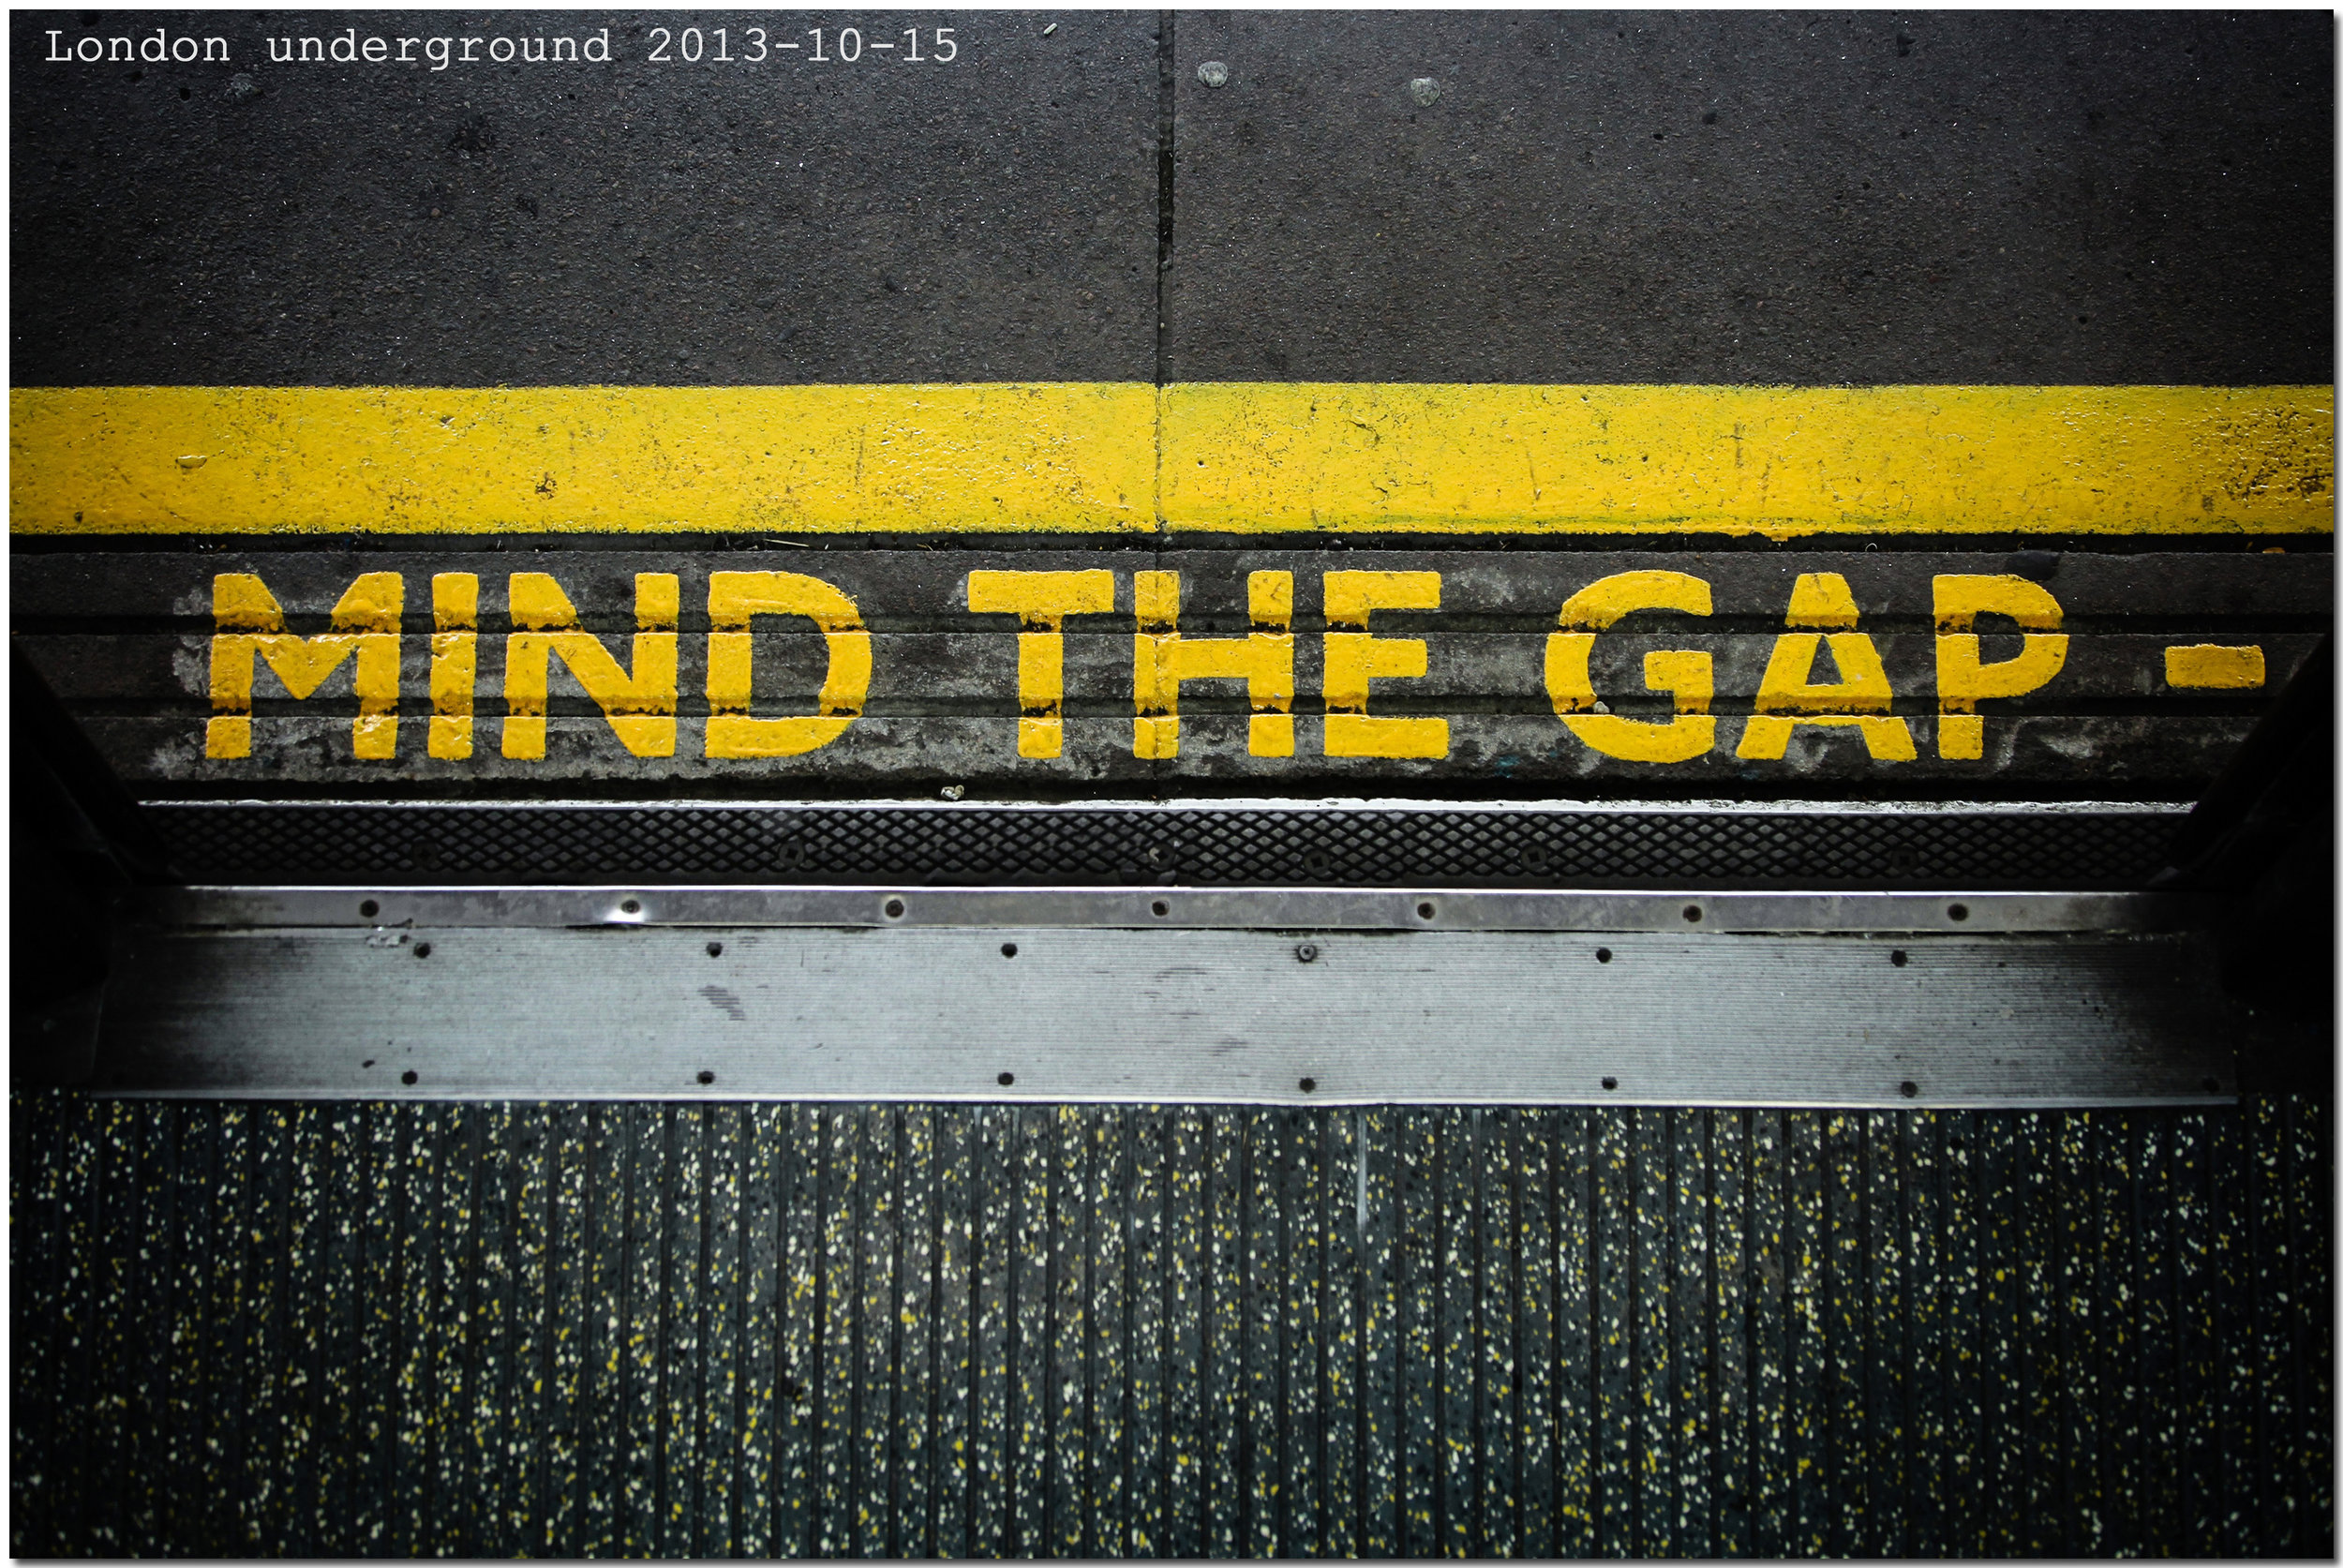 Mind the Gap is an audible and visual warning system on the London Underground to warn people of the gap between the train door and the station platform. It is also a great metaphor for the space between—in business and in life.